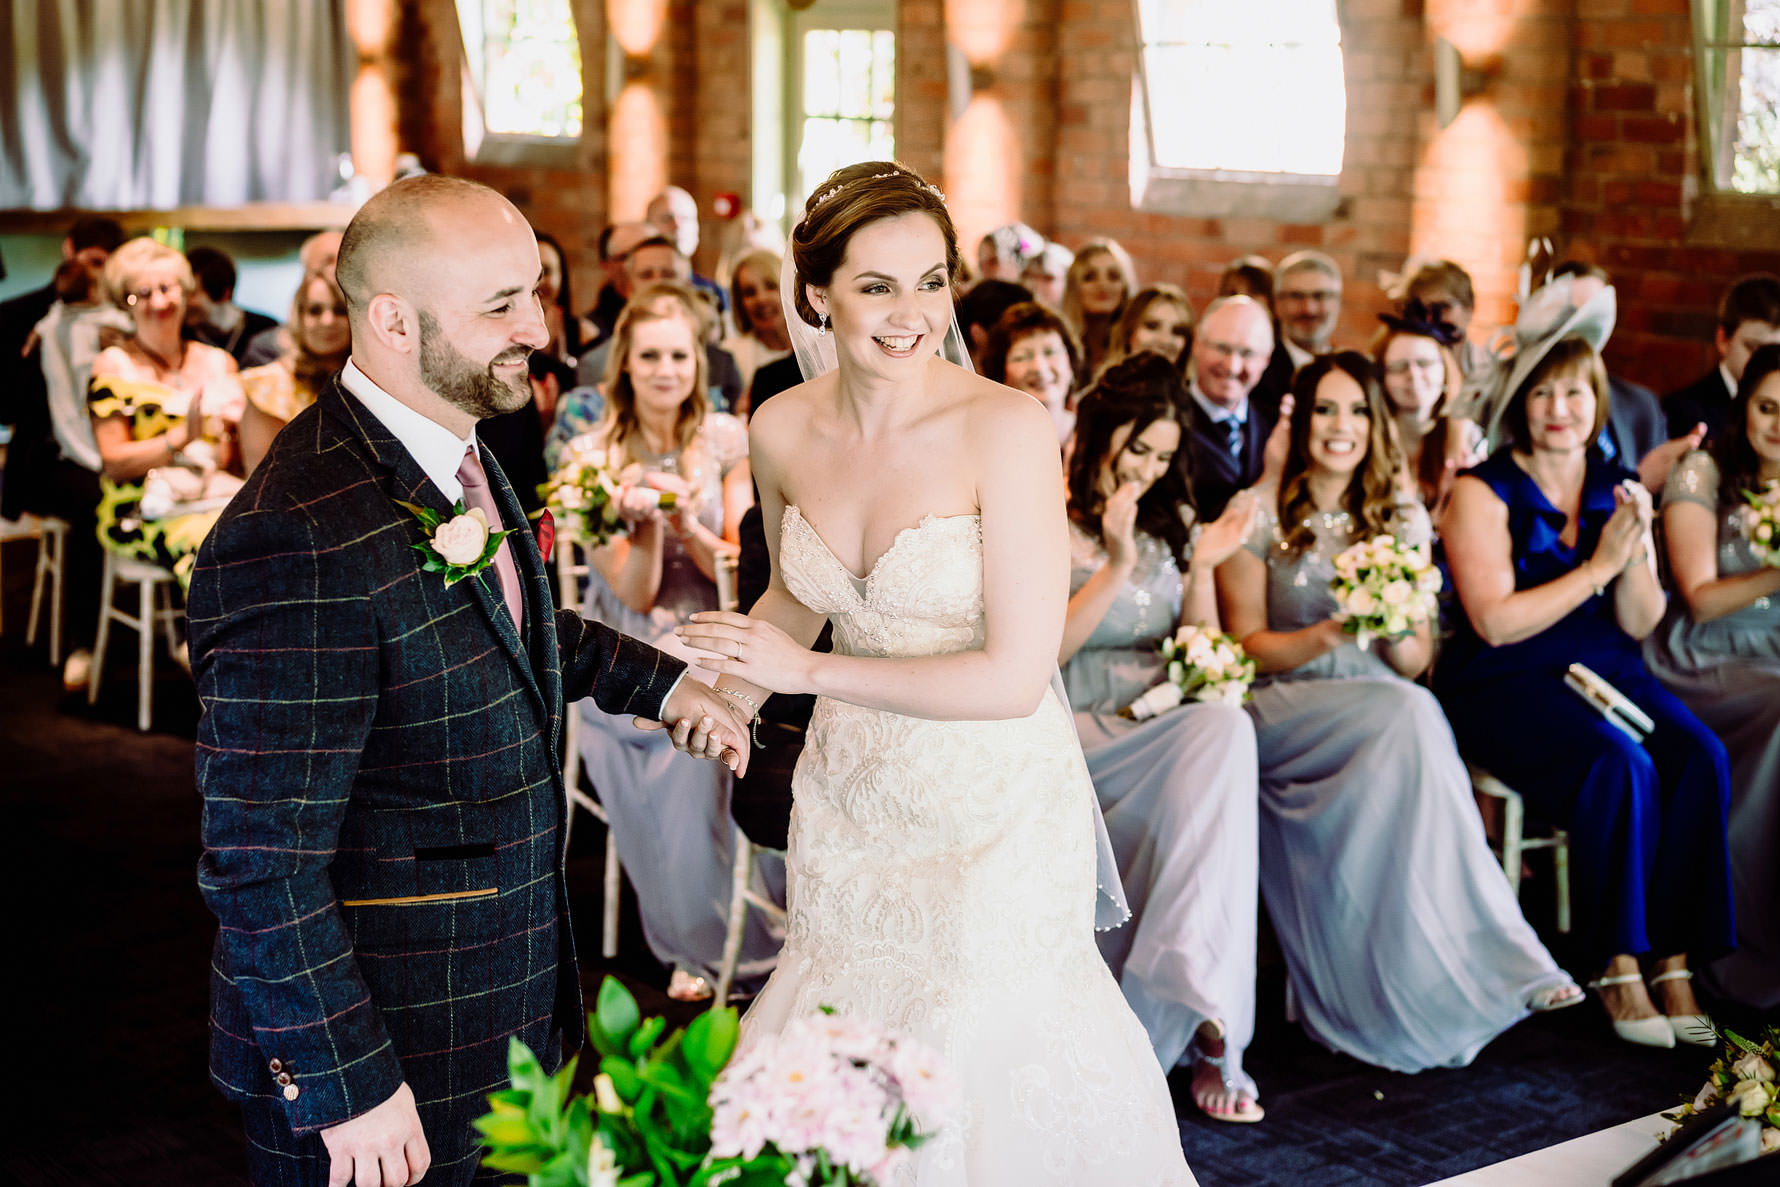 wedding photography at gorcott hall by elliot w patching photography